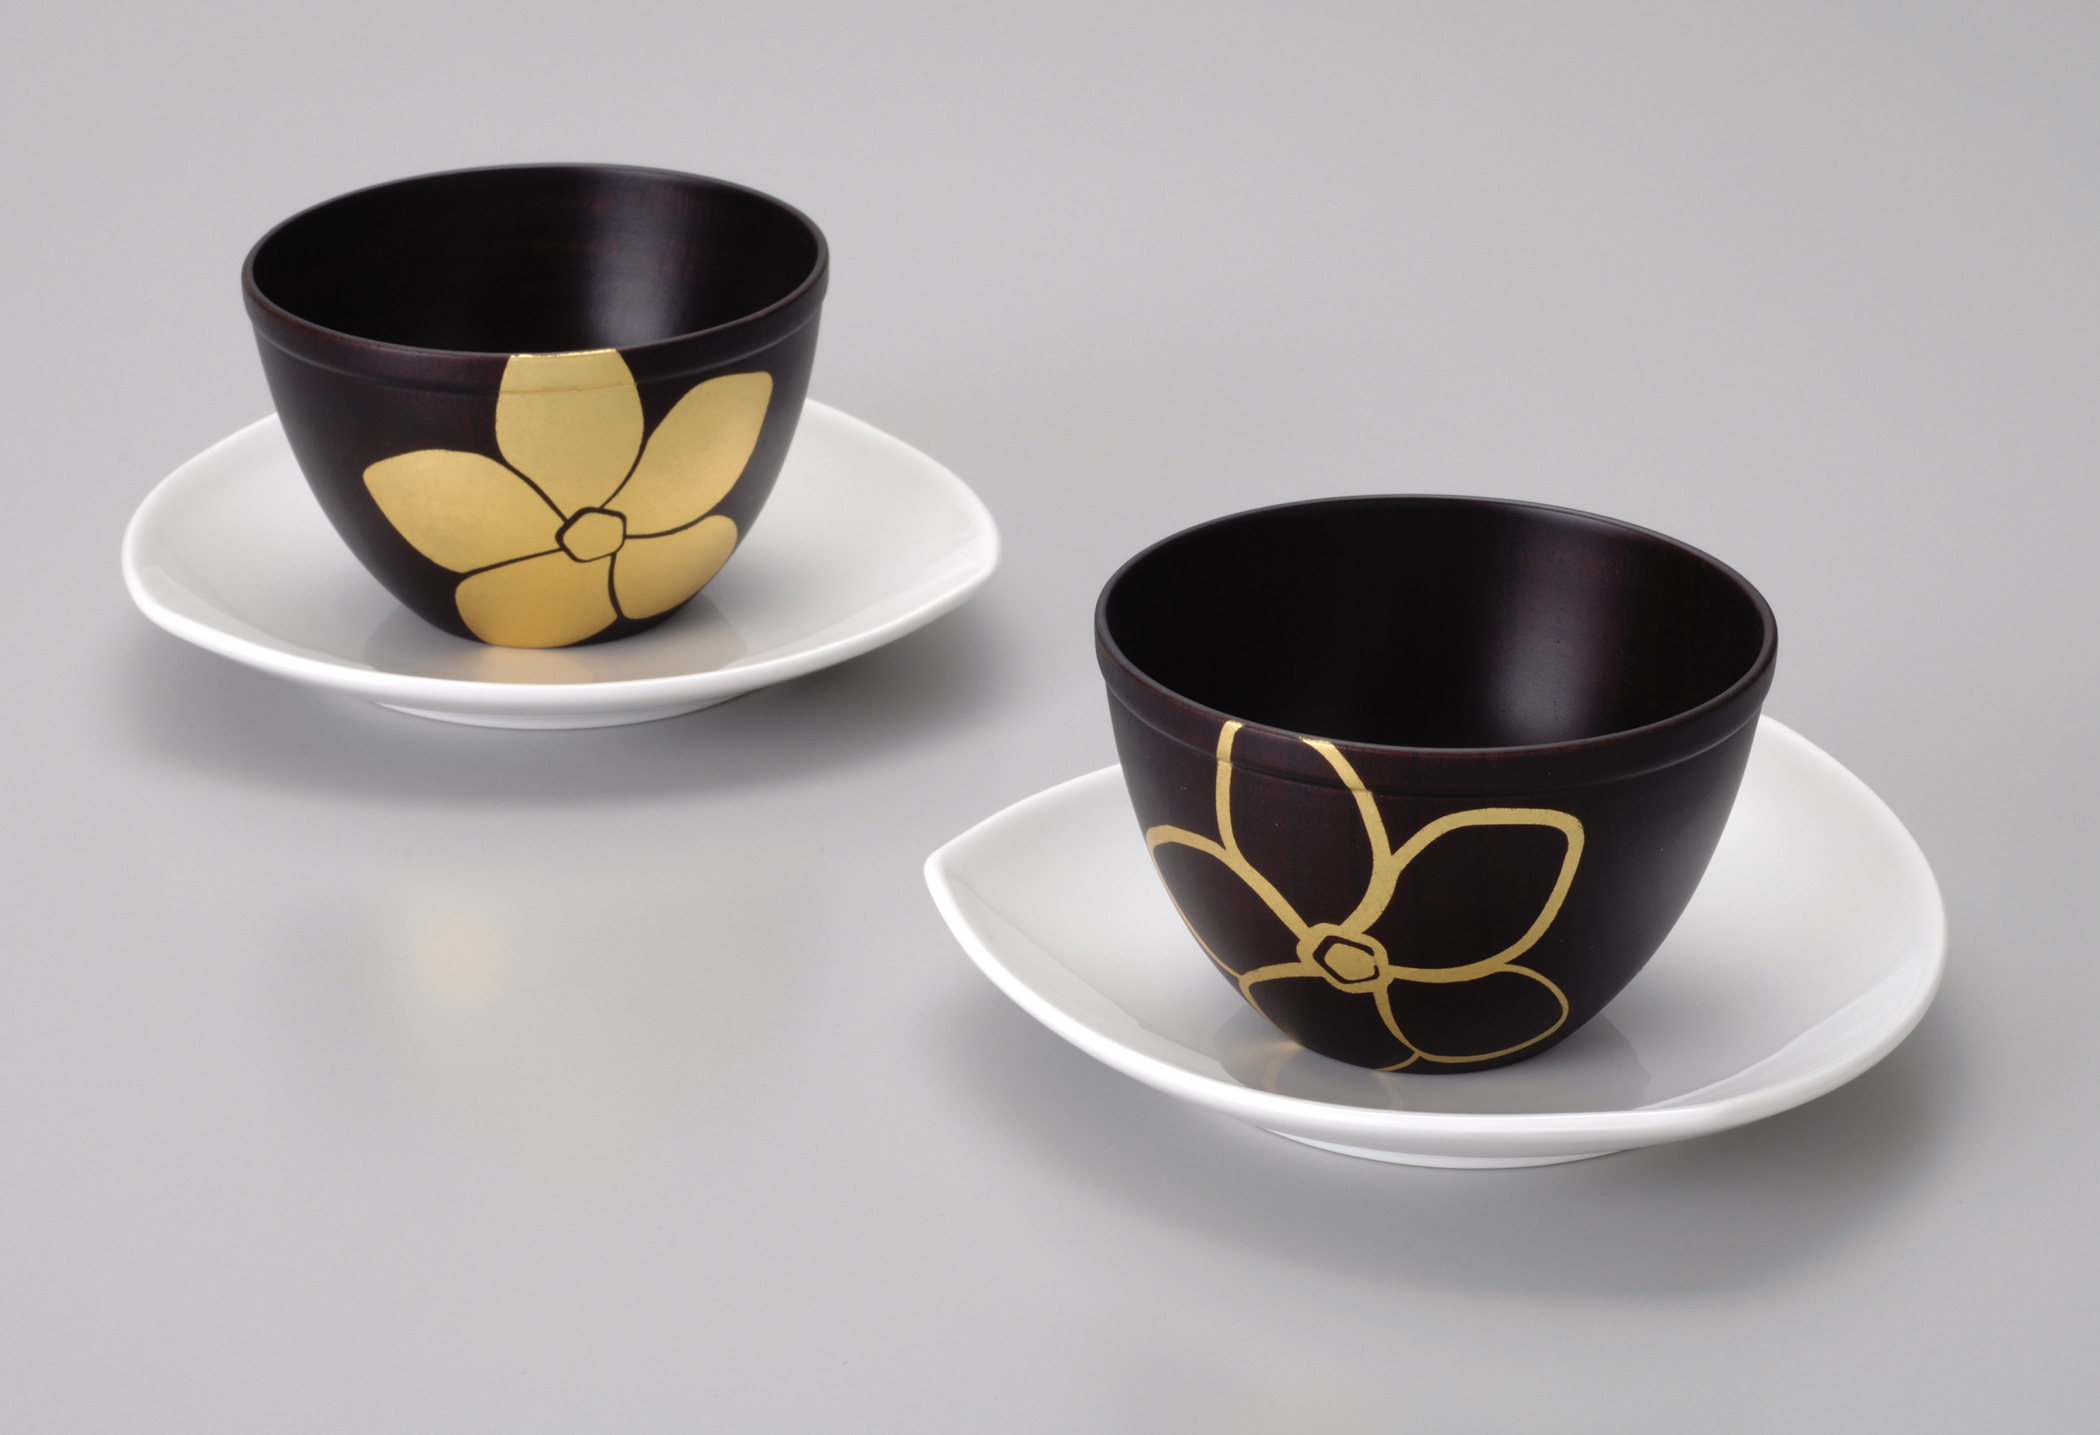 Gold Flower Black Bowl u0026 Plate Set Authentic Kanazawa-haku Gold & Gold Flower Black Bowl u0026 Plate Set « Unique Japan (uniquejapan.com)